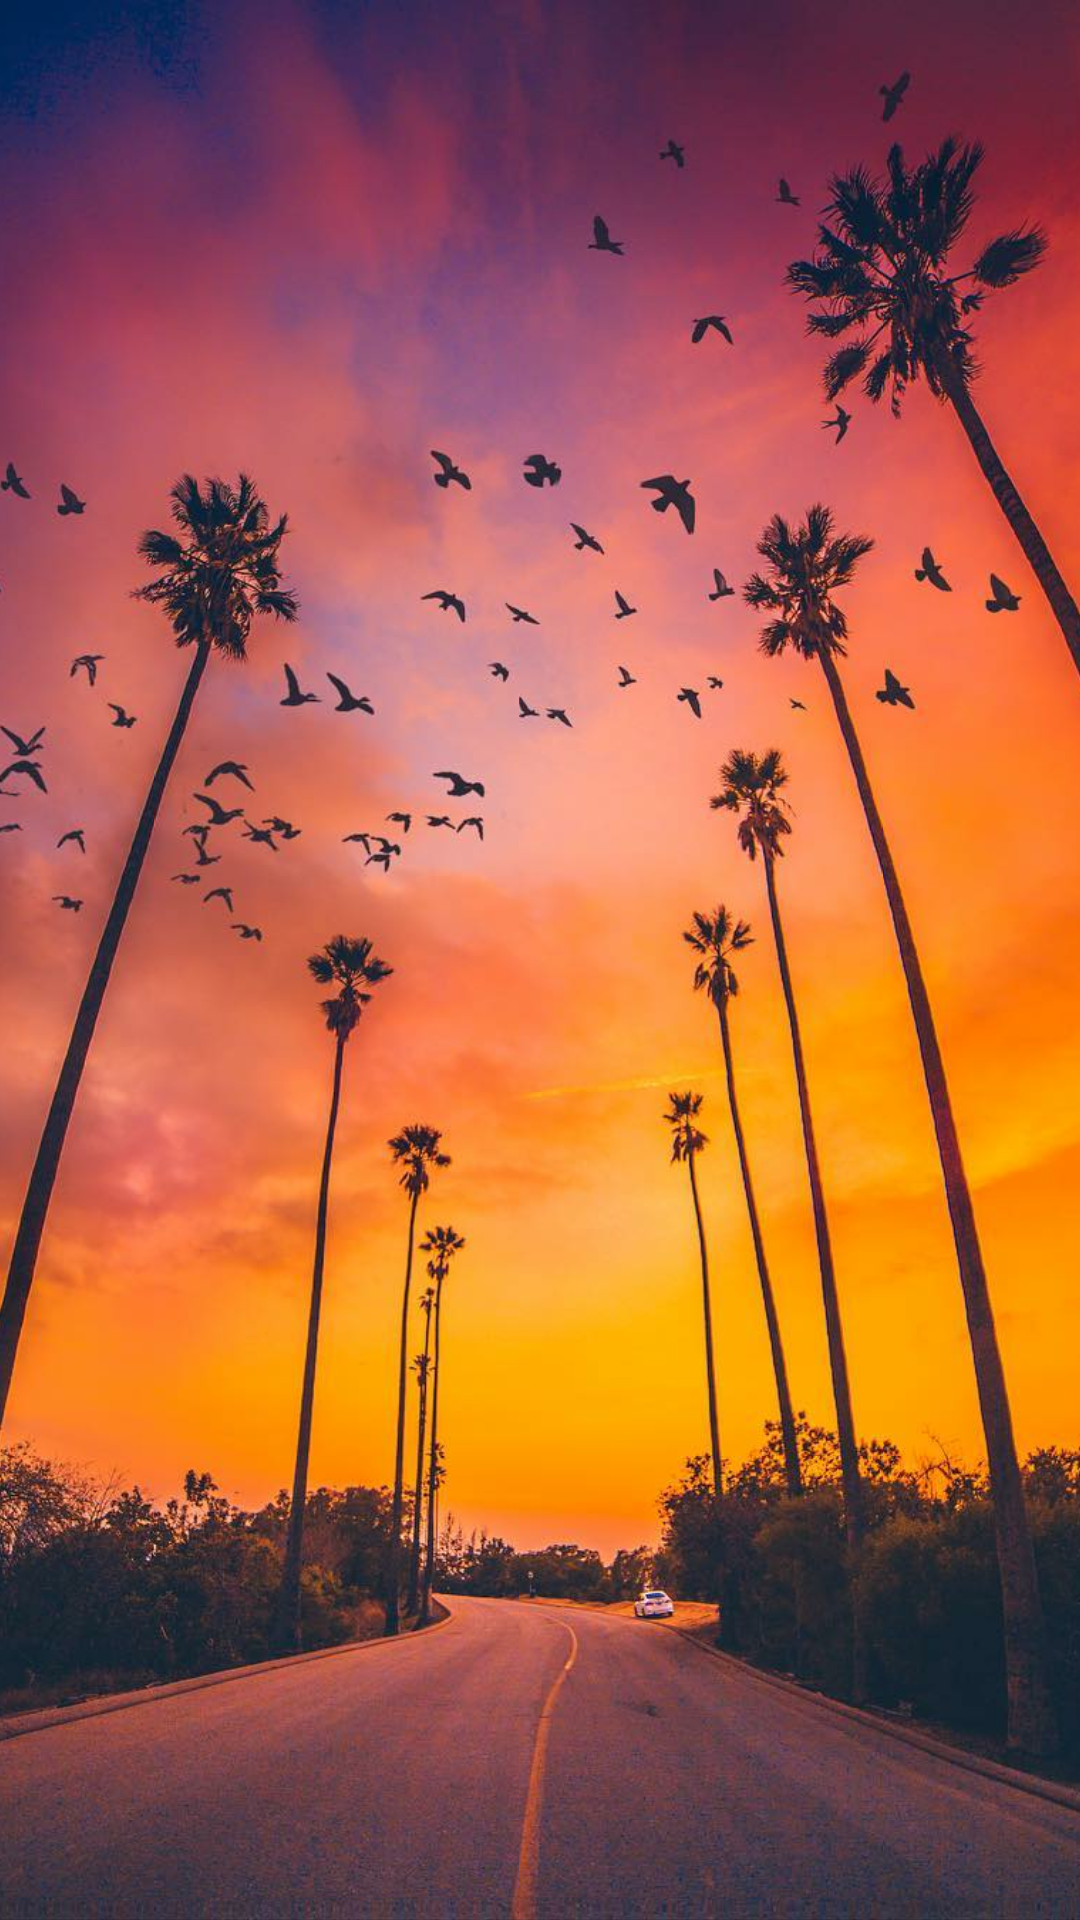 Palm Trees Sunset Nature iPhone Wallpaper